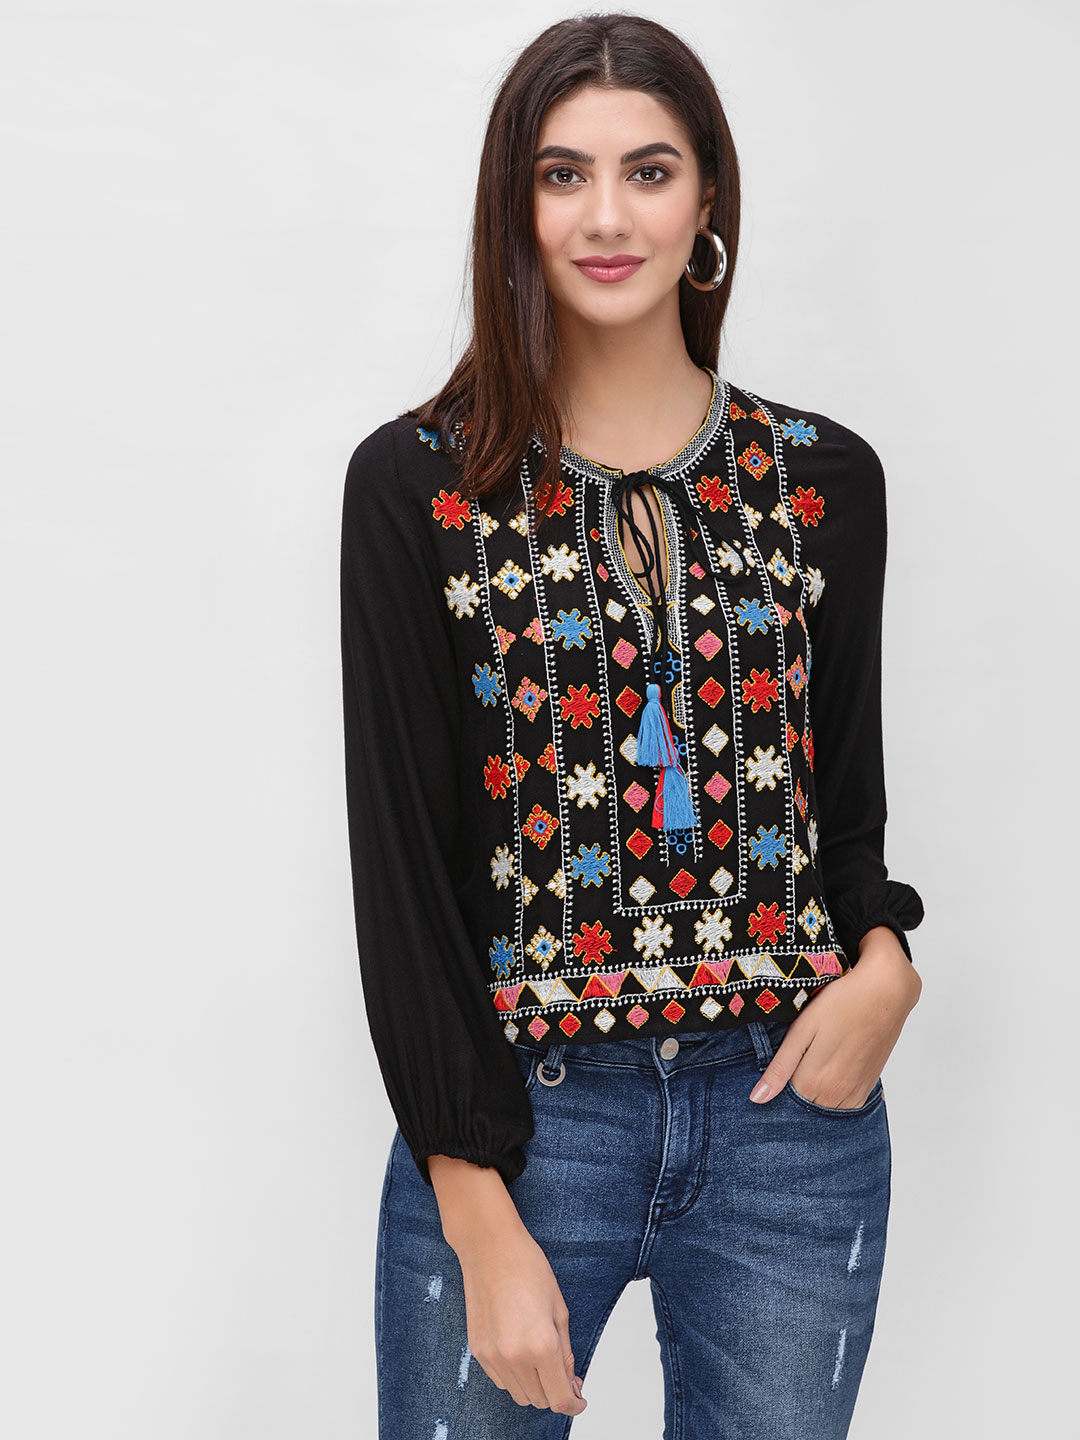 Rena Love Black Blouse With Embroidery 1